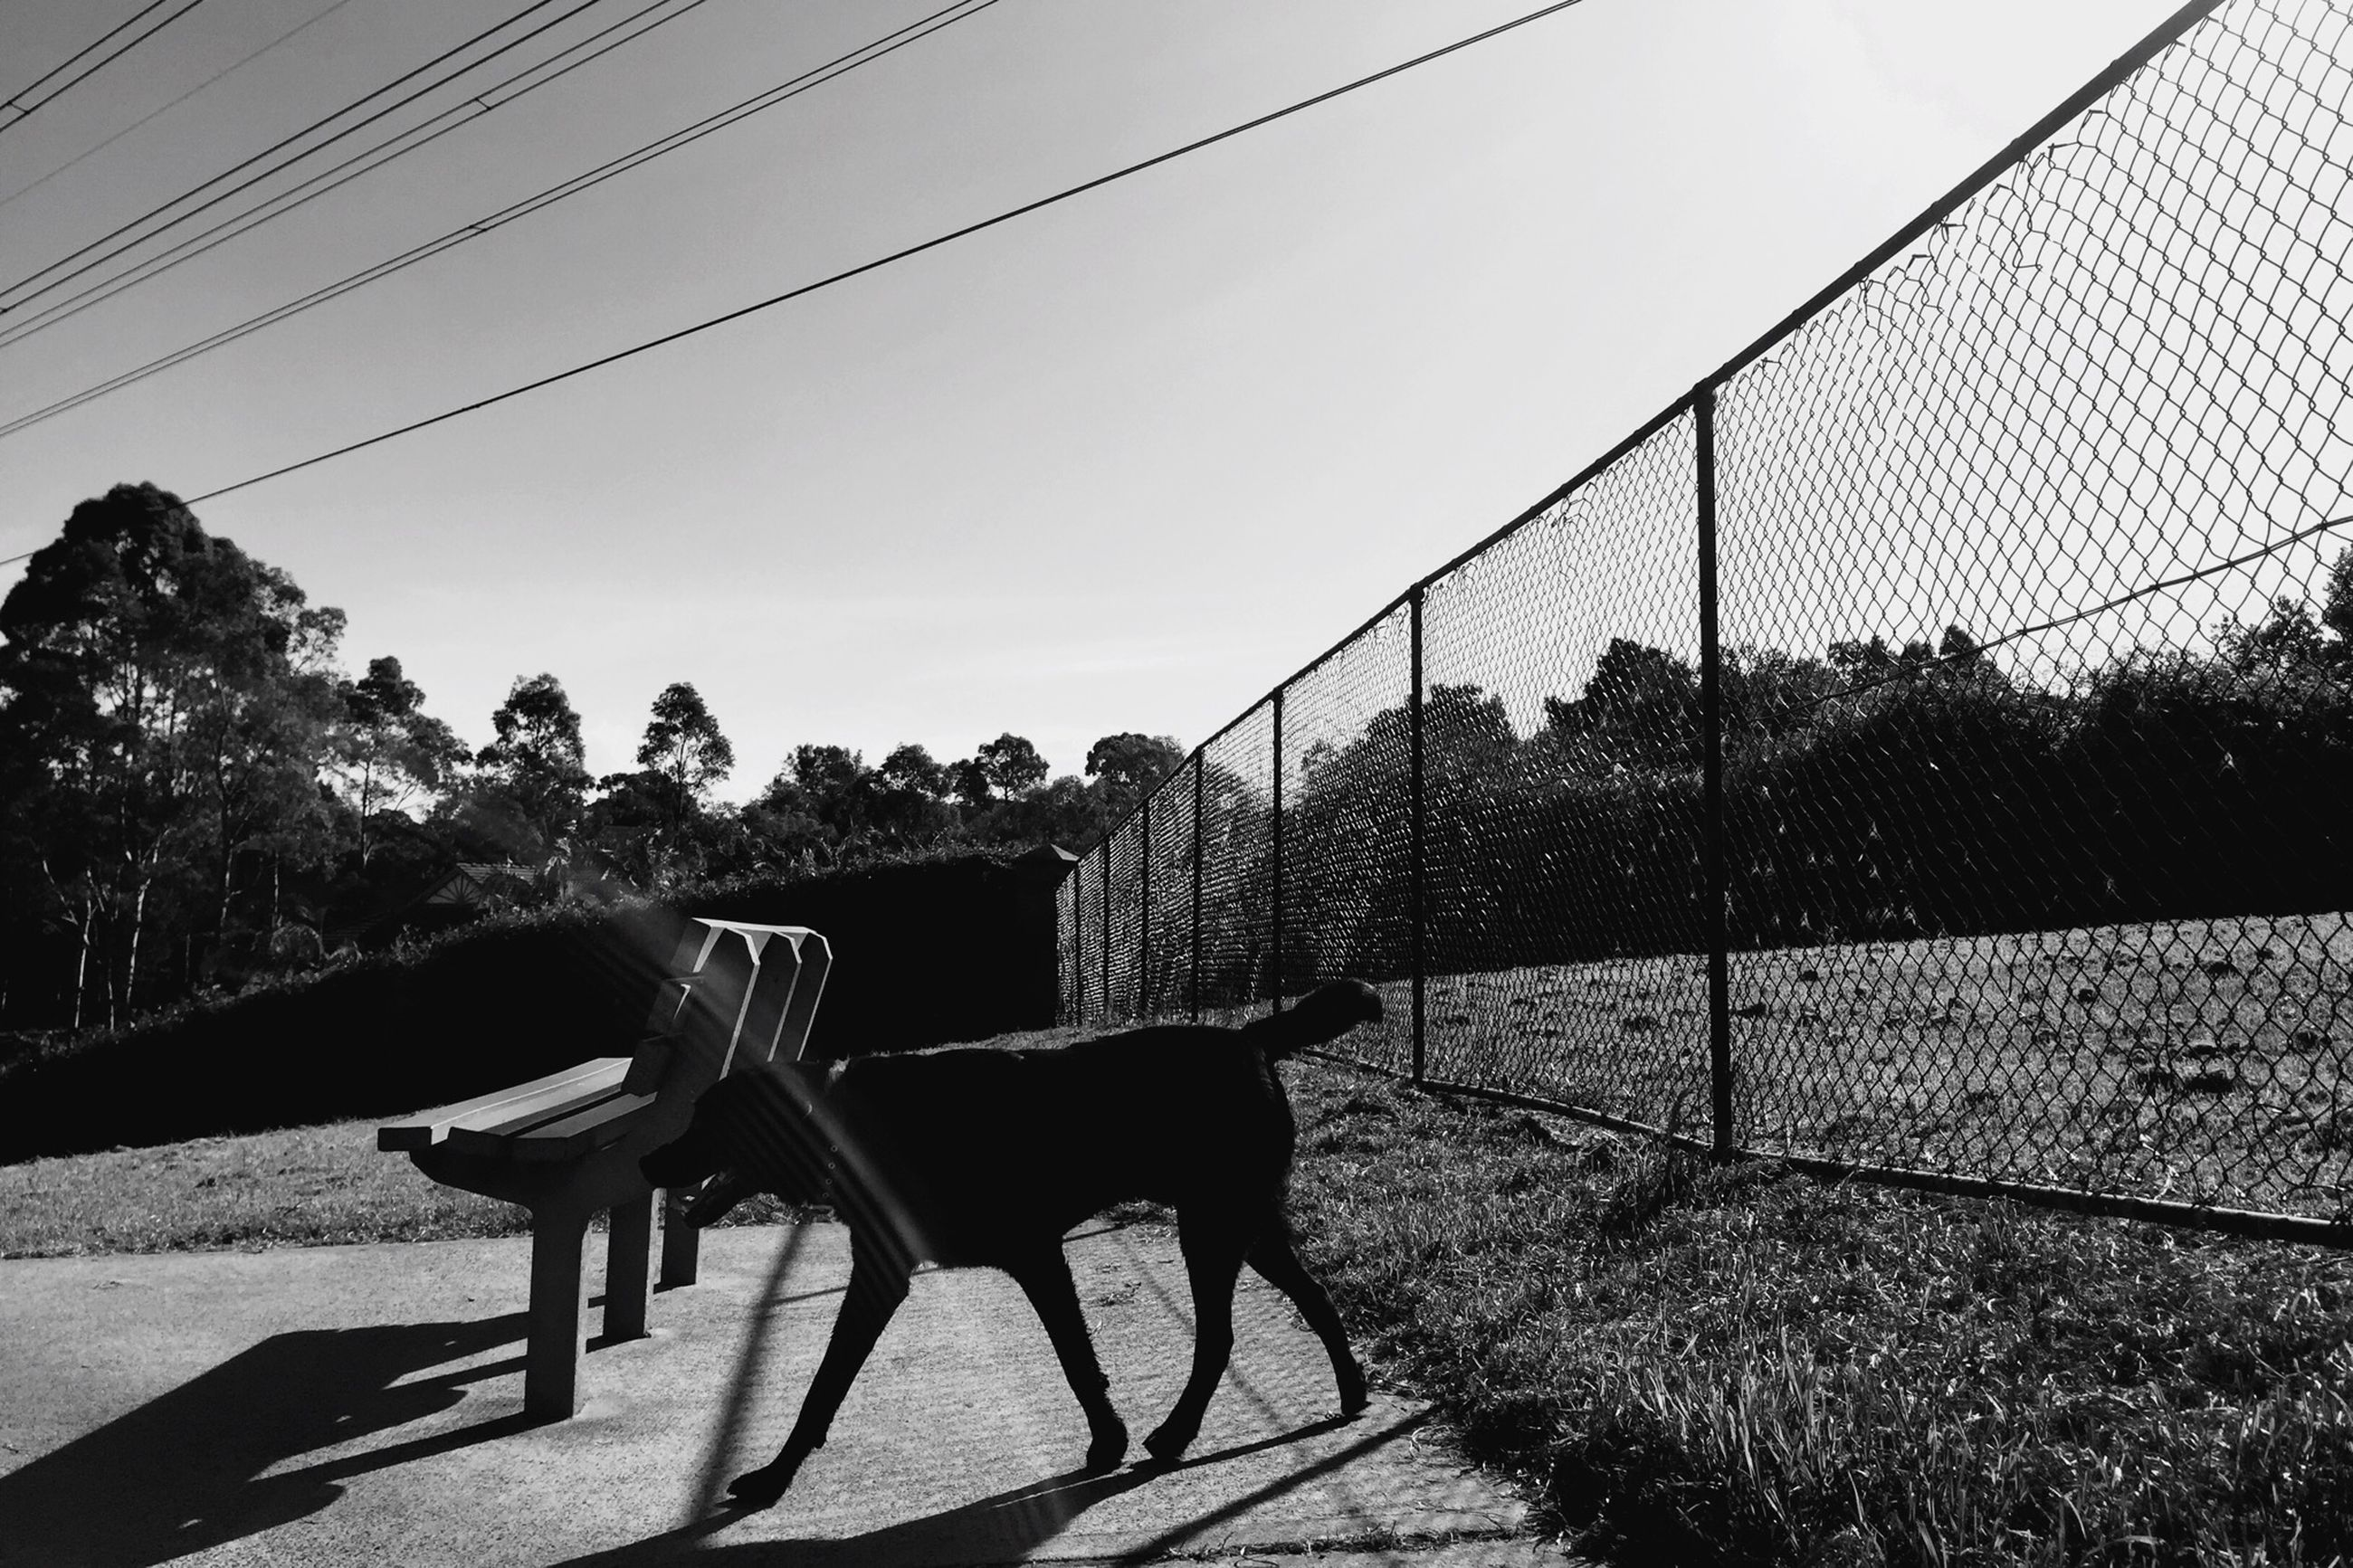 domestic animals, transportation, animal themes, cable, tree, sunlight, clear sky, mammal, power line, shadow, day, one animal, fence, street, men, walking, road, outdoors, sky